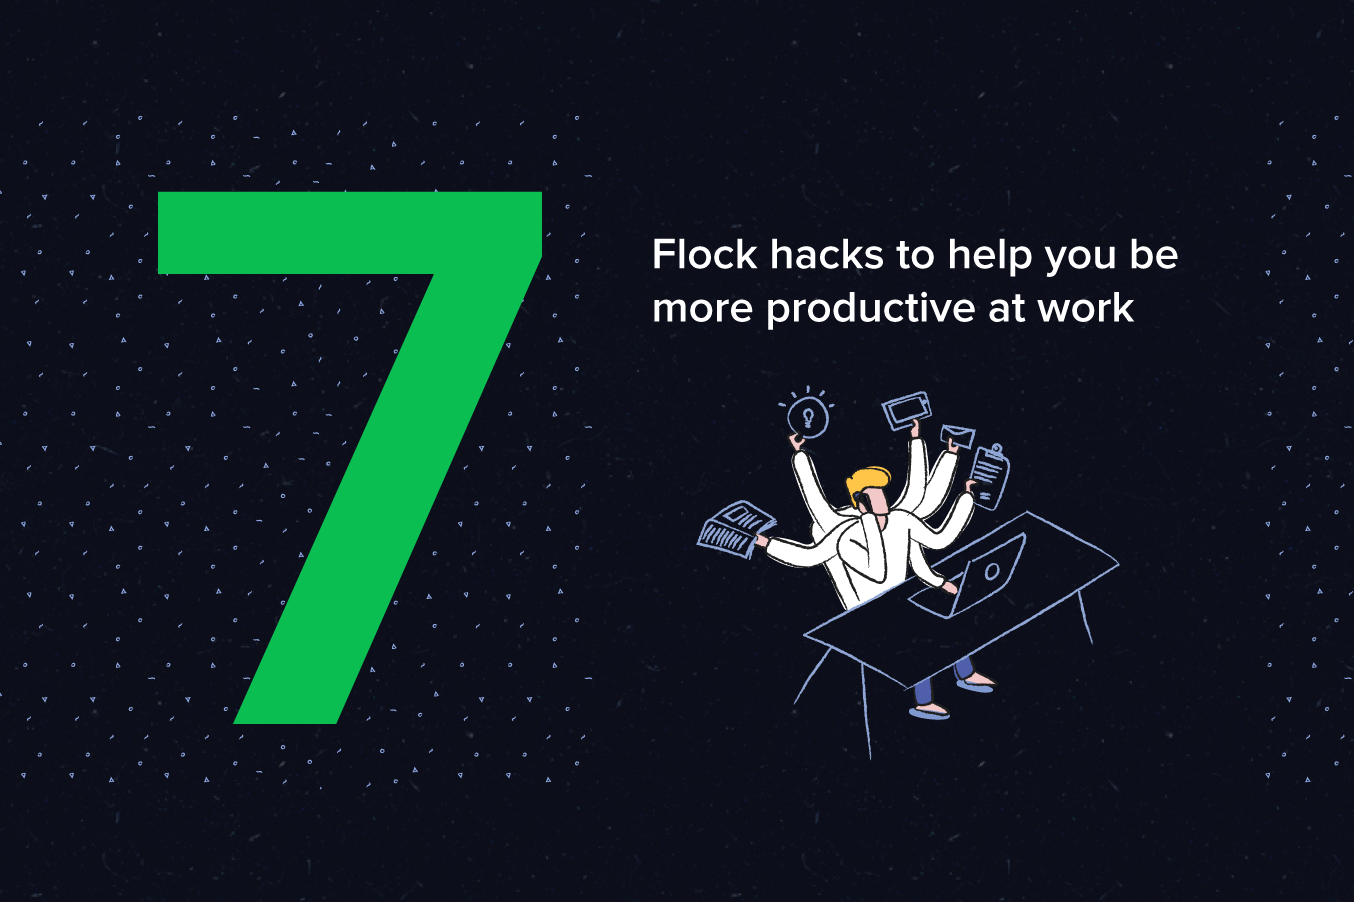 7 Flock hacks to help you be productive